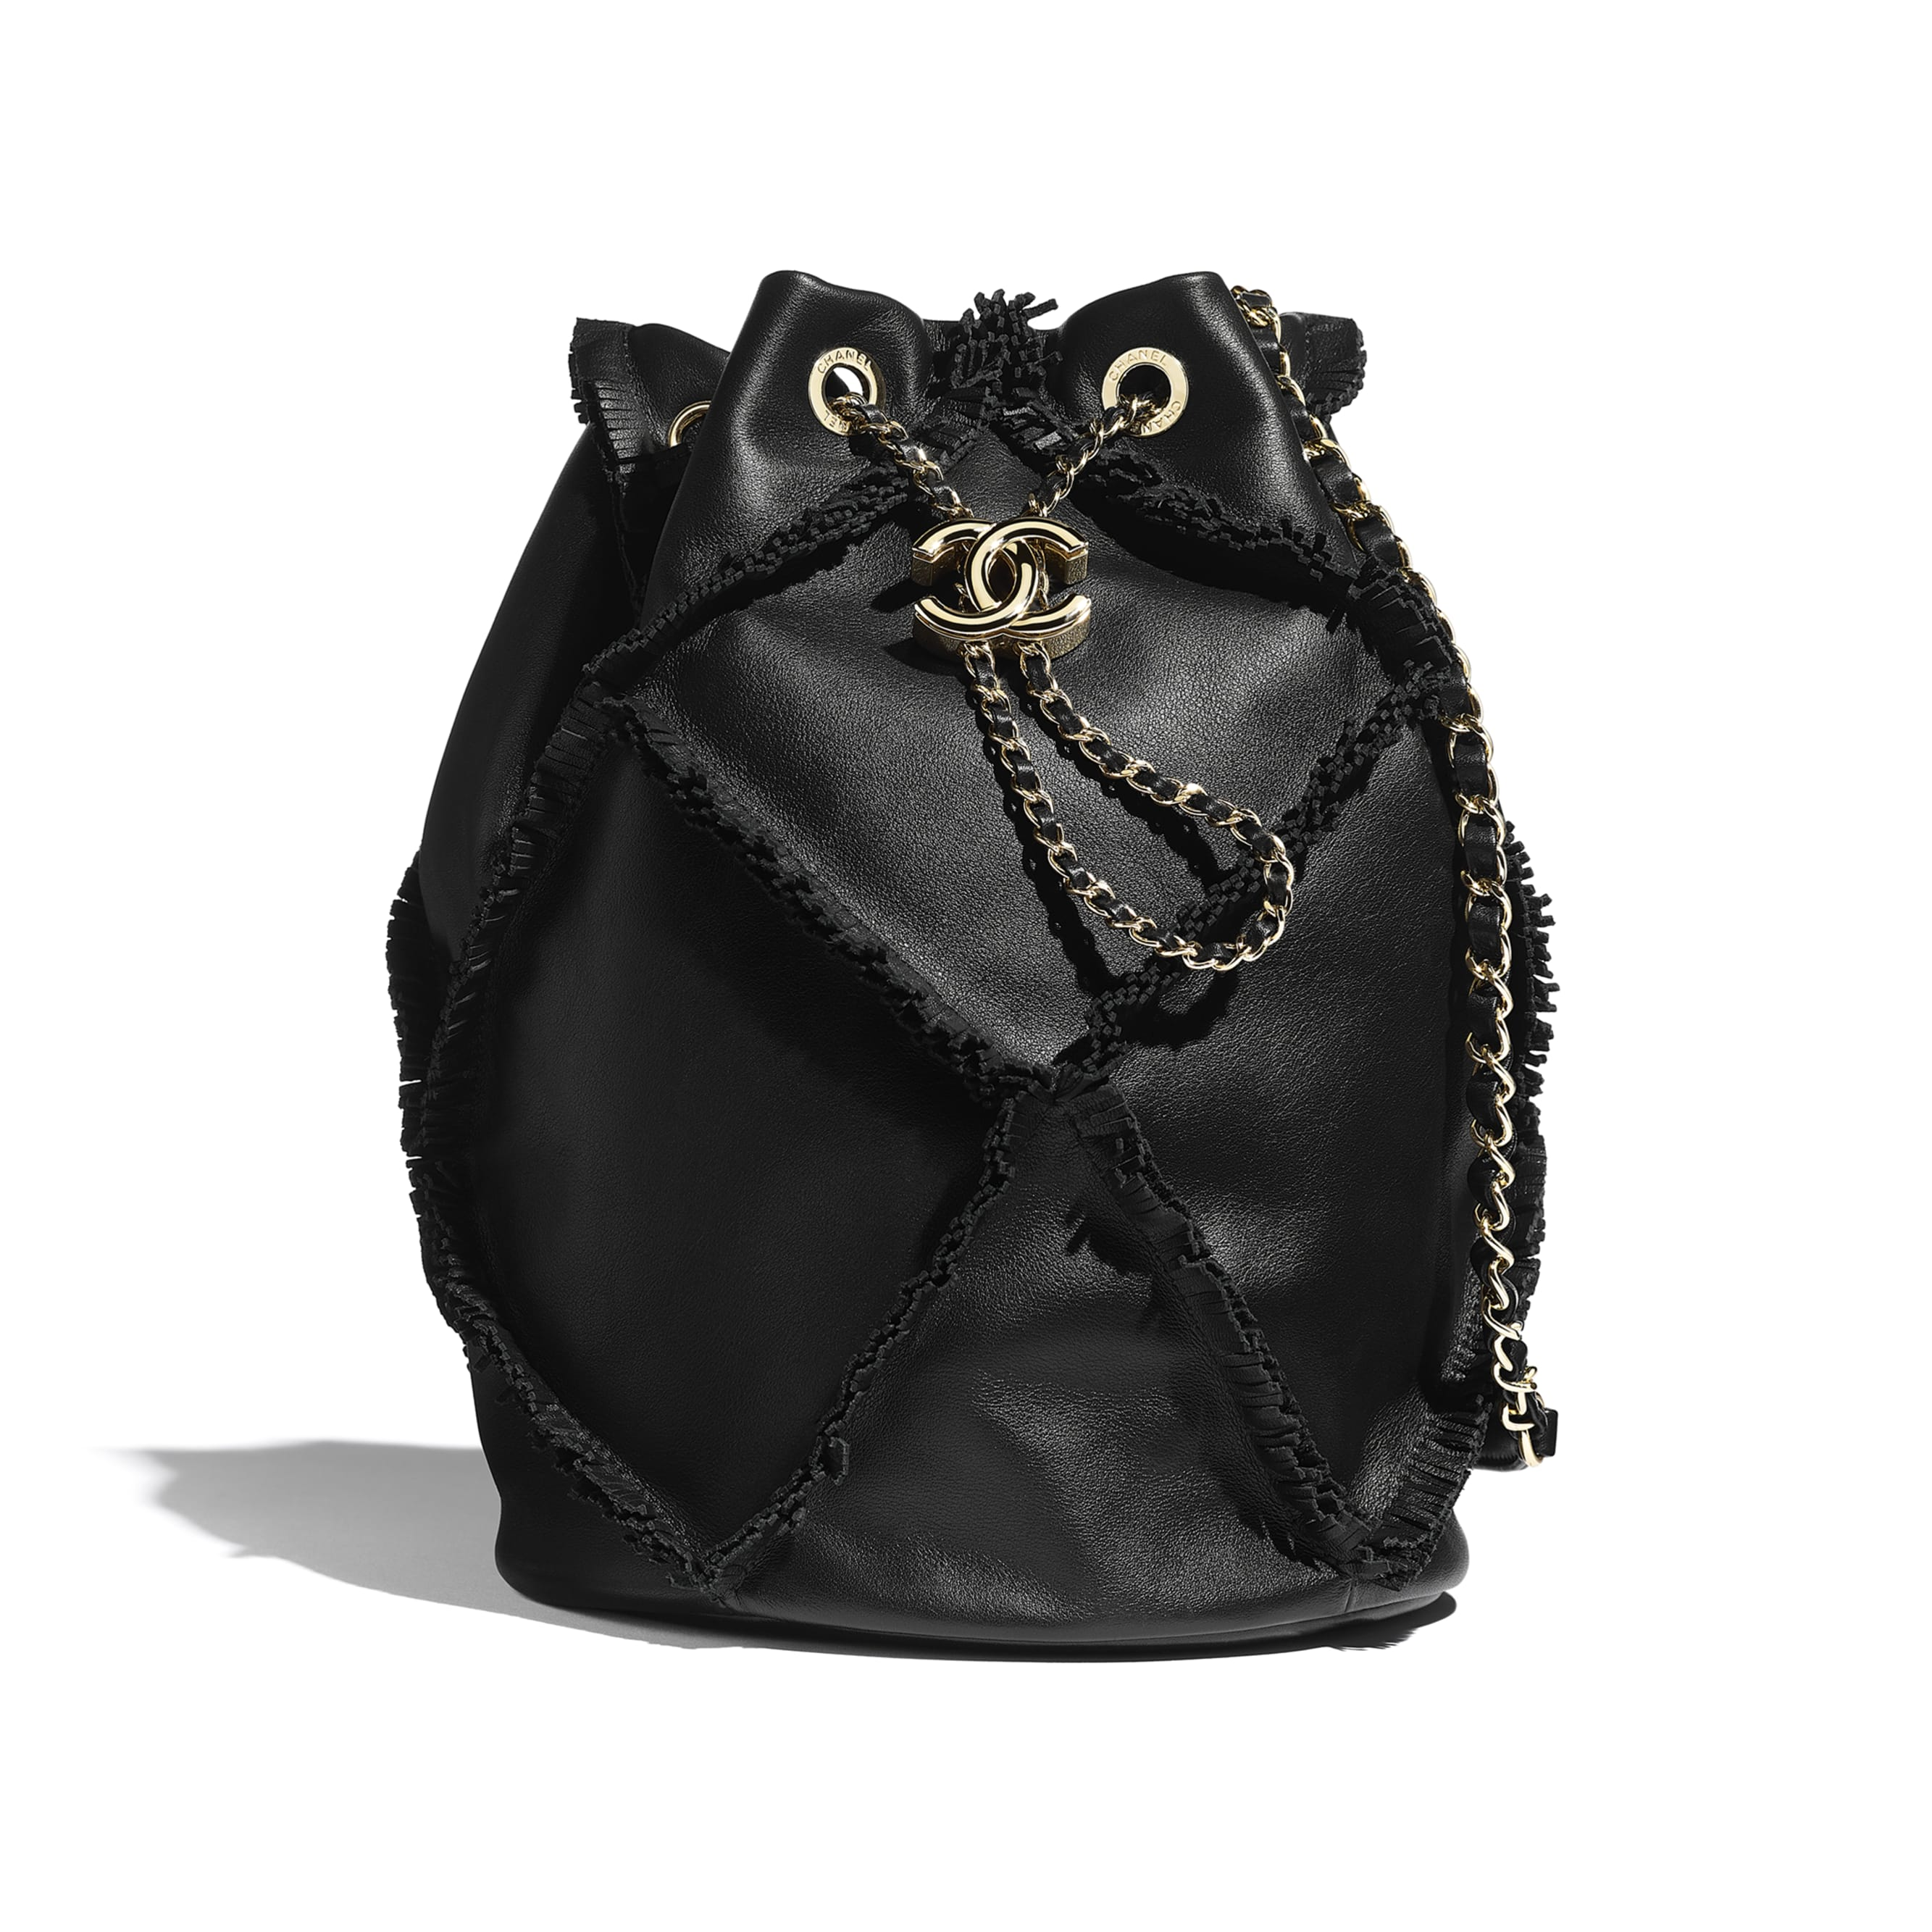 Drawstring Bag - Black - Calfskin & Gold-Tone Metal - Default view - see standard sized version